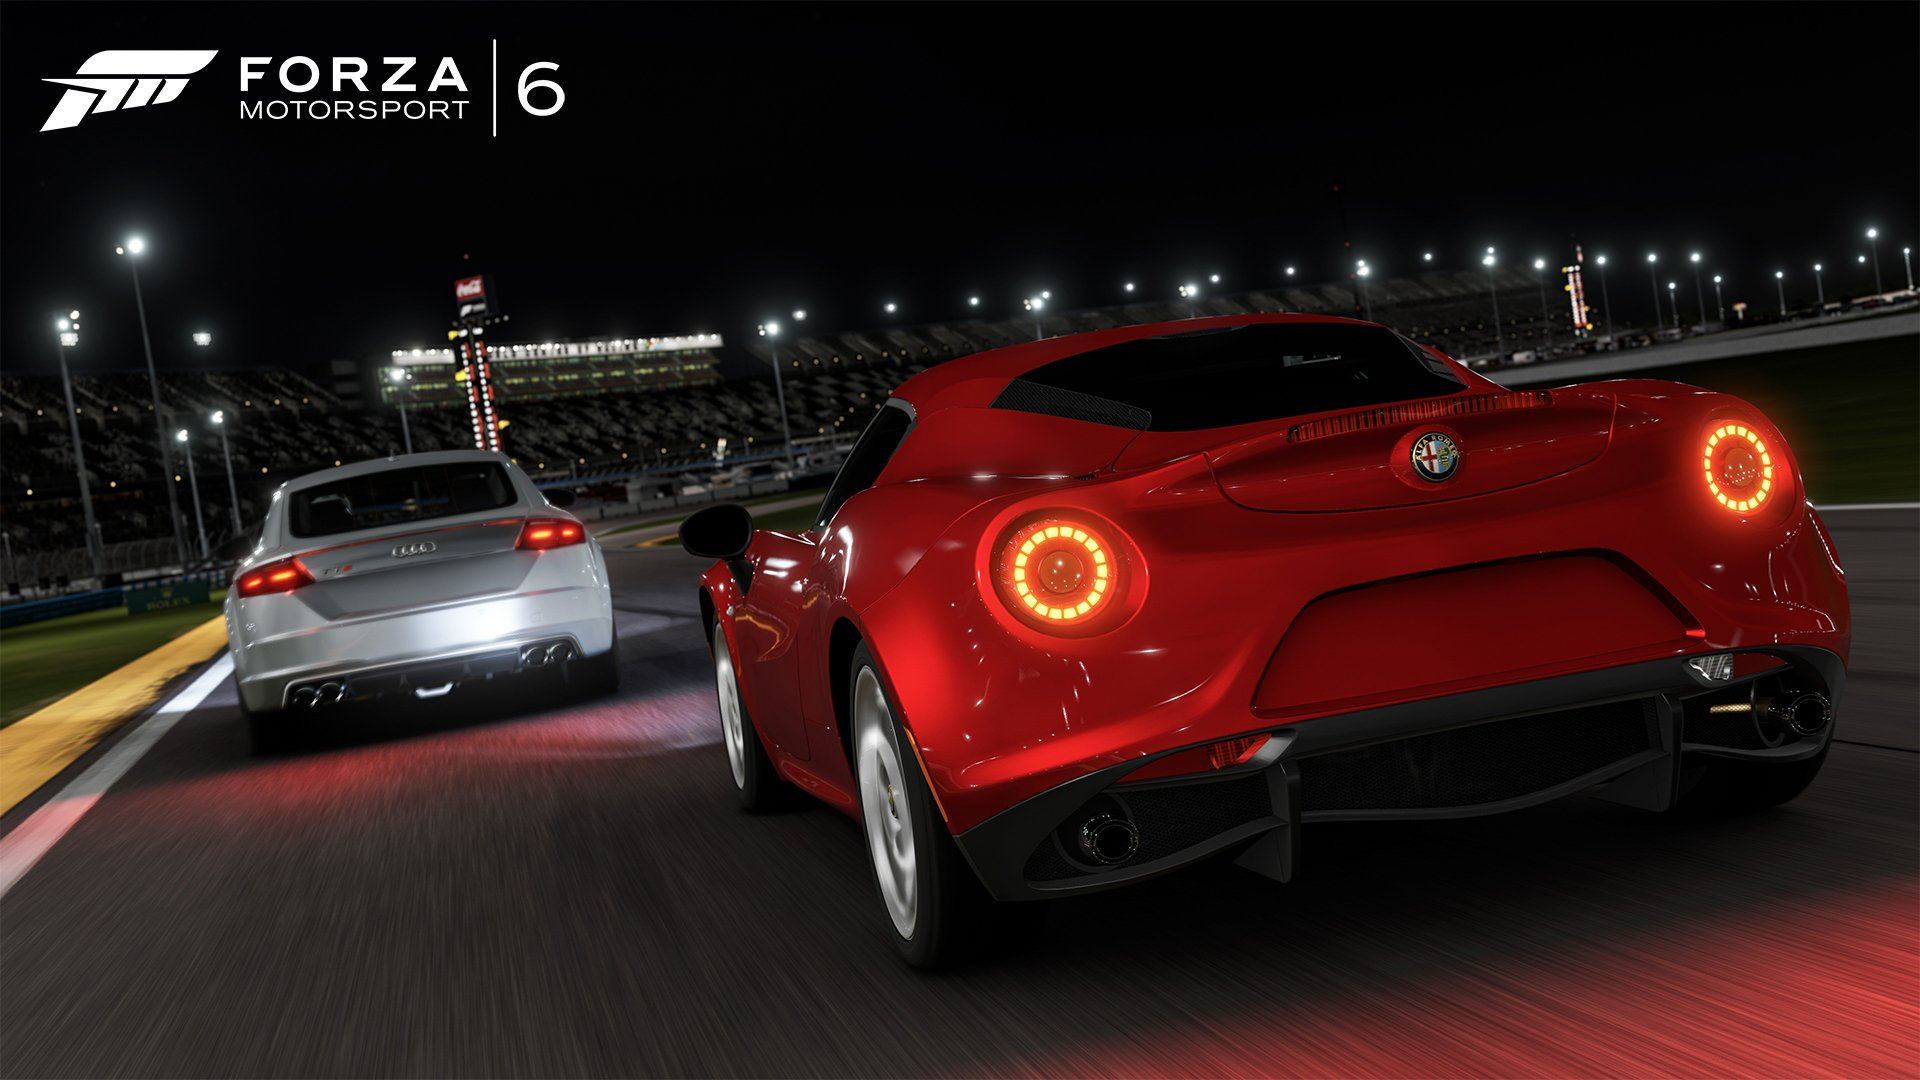 Forza Motorsport 6 game review